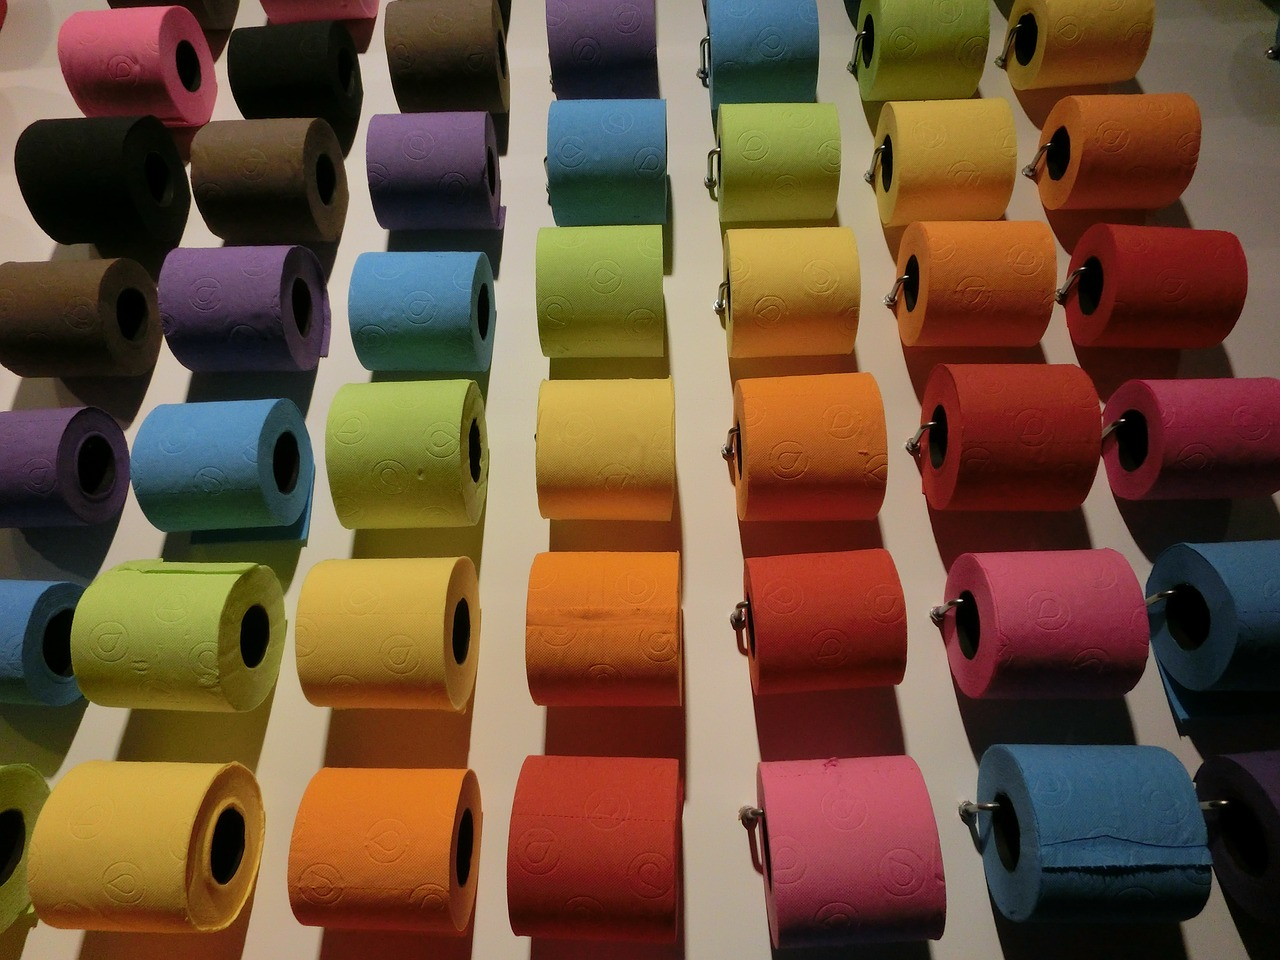 Toilet paper in rainbow shades - image from pixabay